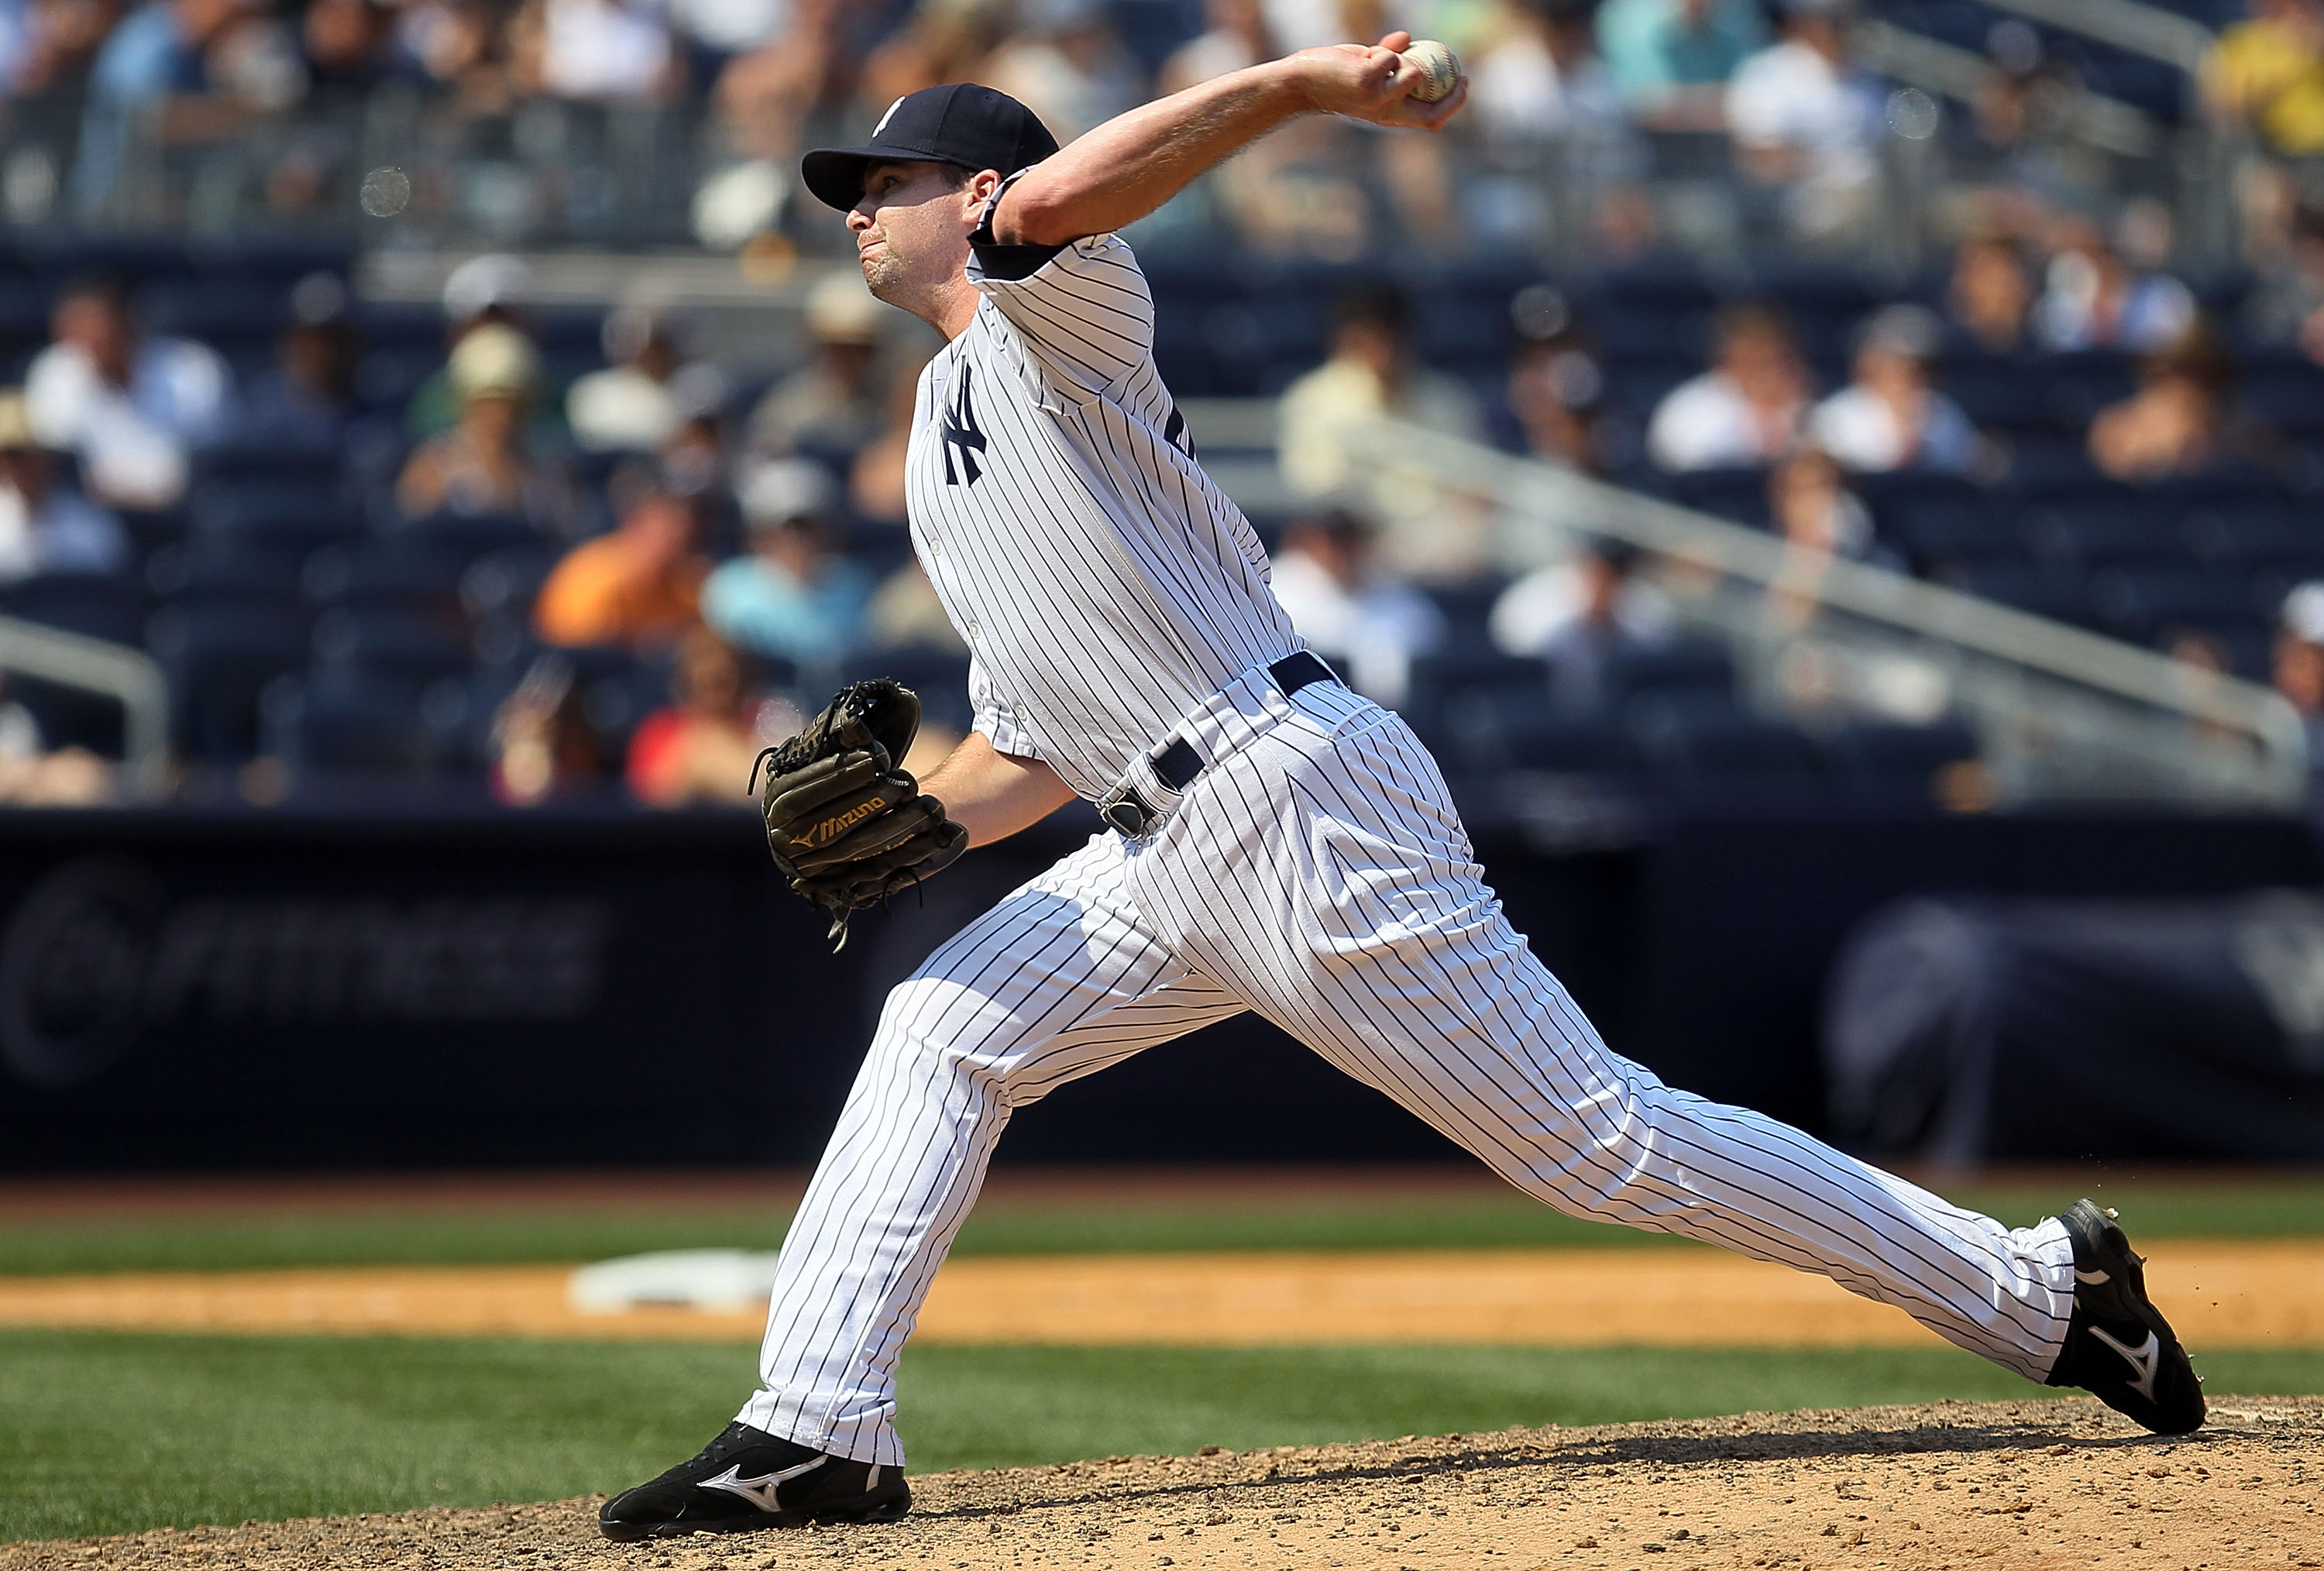 NEW YORK - JULY 18:  Boone Logan #48 of the New York Yankees delivers a pitch against the Tampa Bay Rays on July 18, 2010 at Yankee Stadium in the Bronx borough of New York City. The Yankees defeated the Rays 9-5.  (Photo by Jim McIsaac/Getty Images)